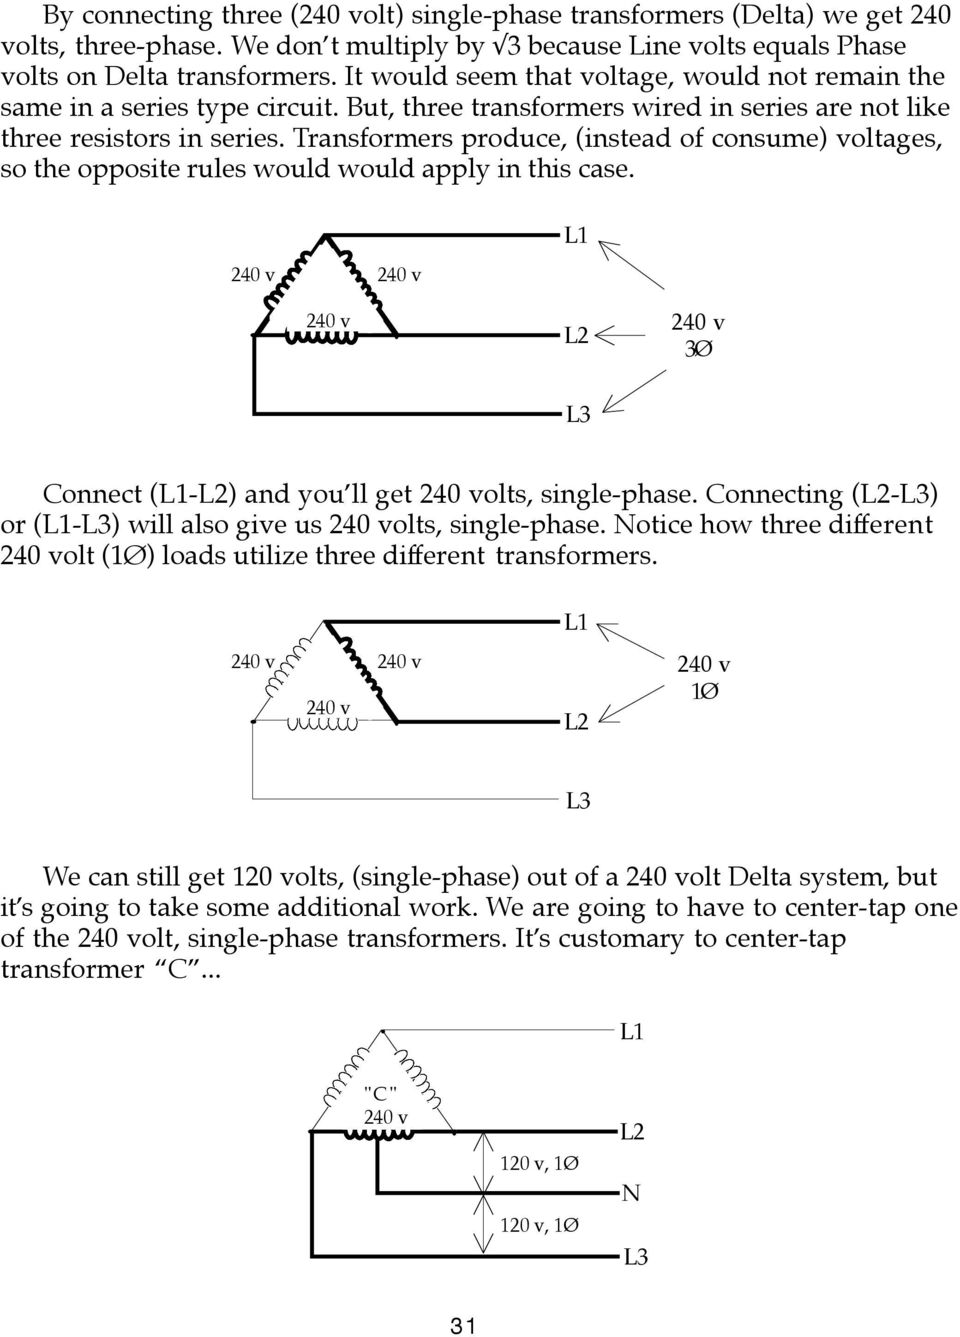 hight resolution of transformers produce instead of consume voltages so the opposite rules would would